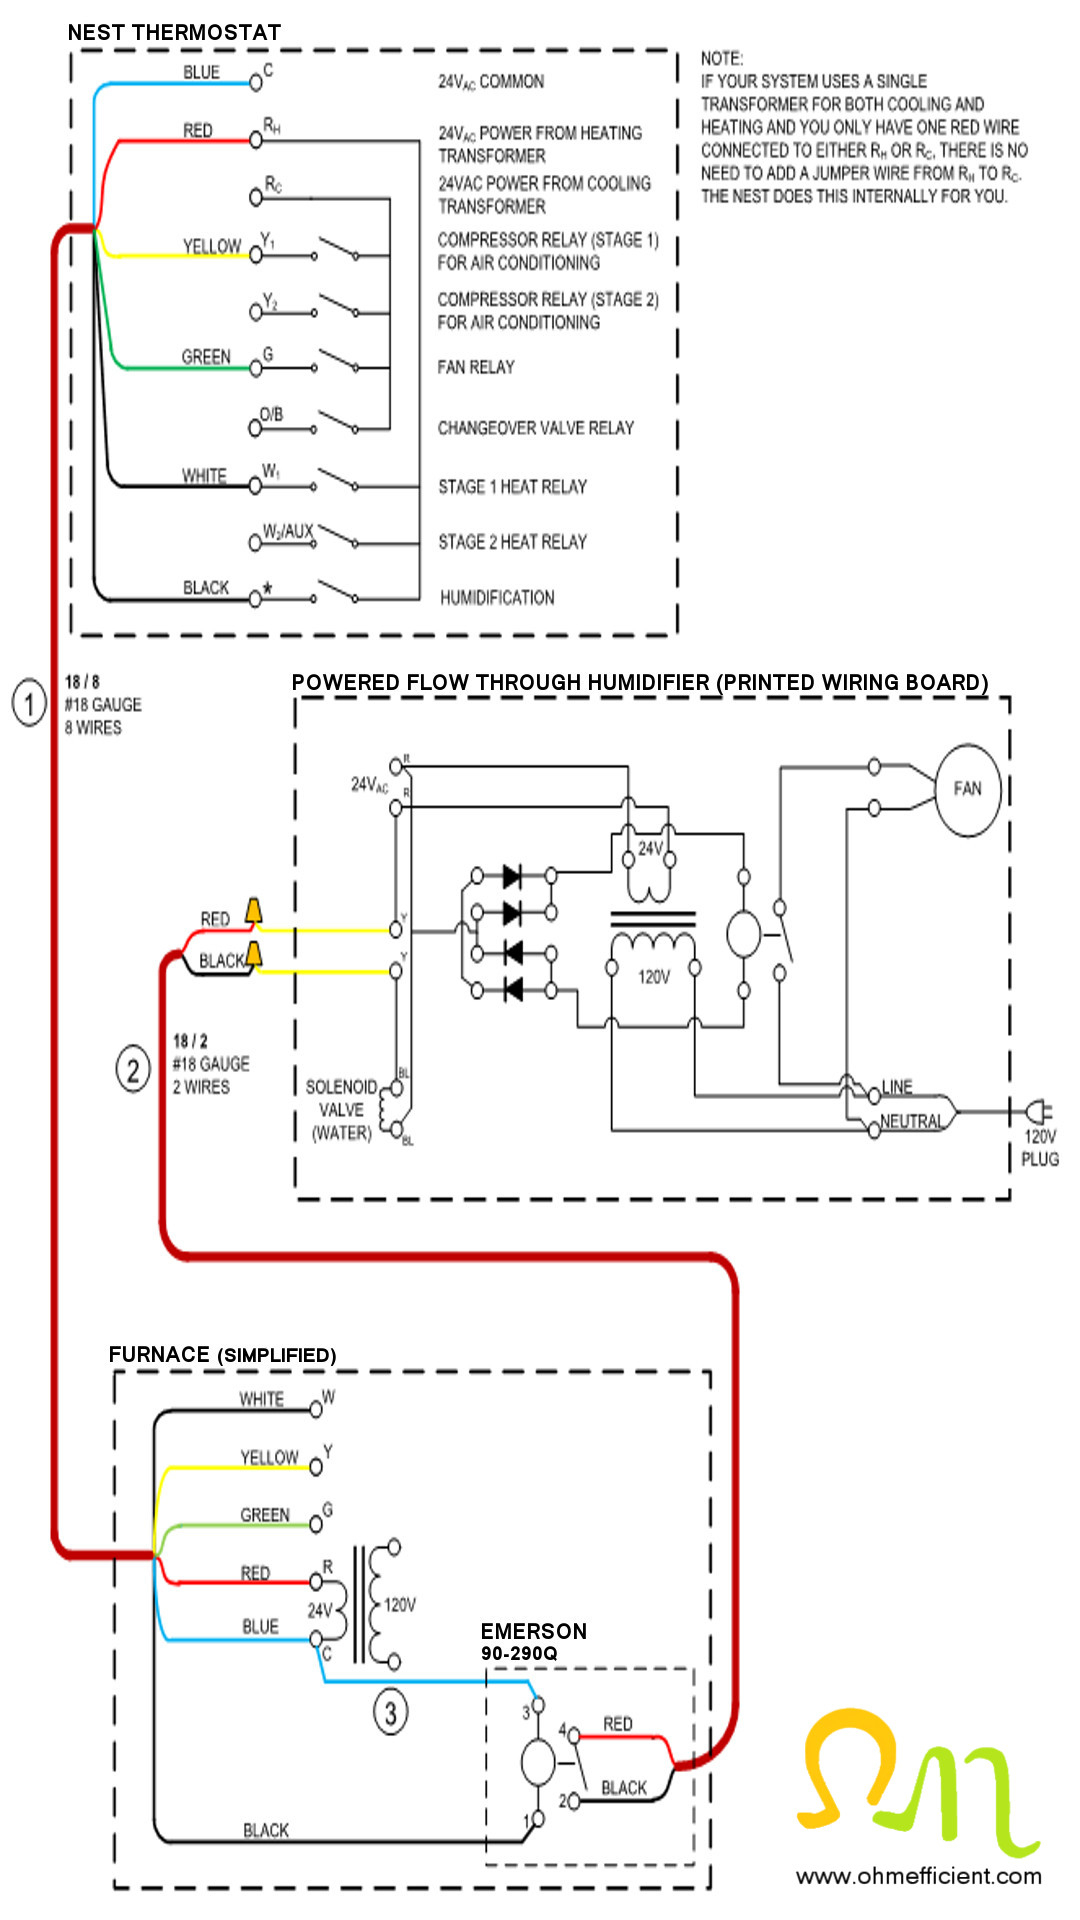 Tremendous Wiring Diagram For Nest Thermostat With Humidifier Wiring Diagrams Wiring Digital Resources Counpmognl